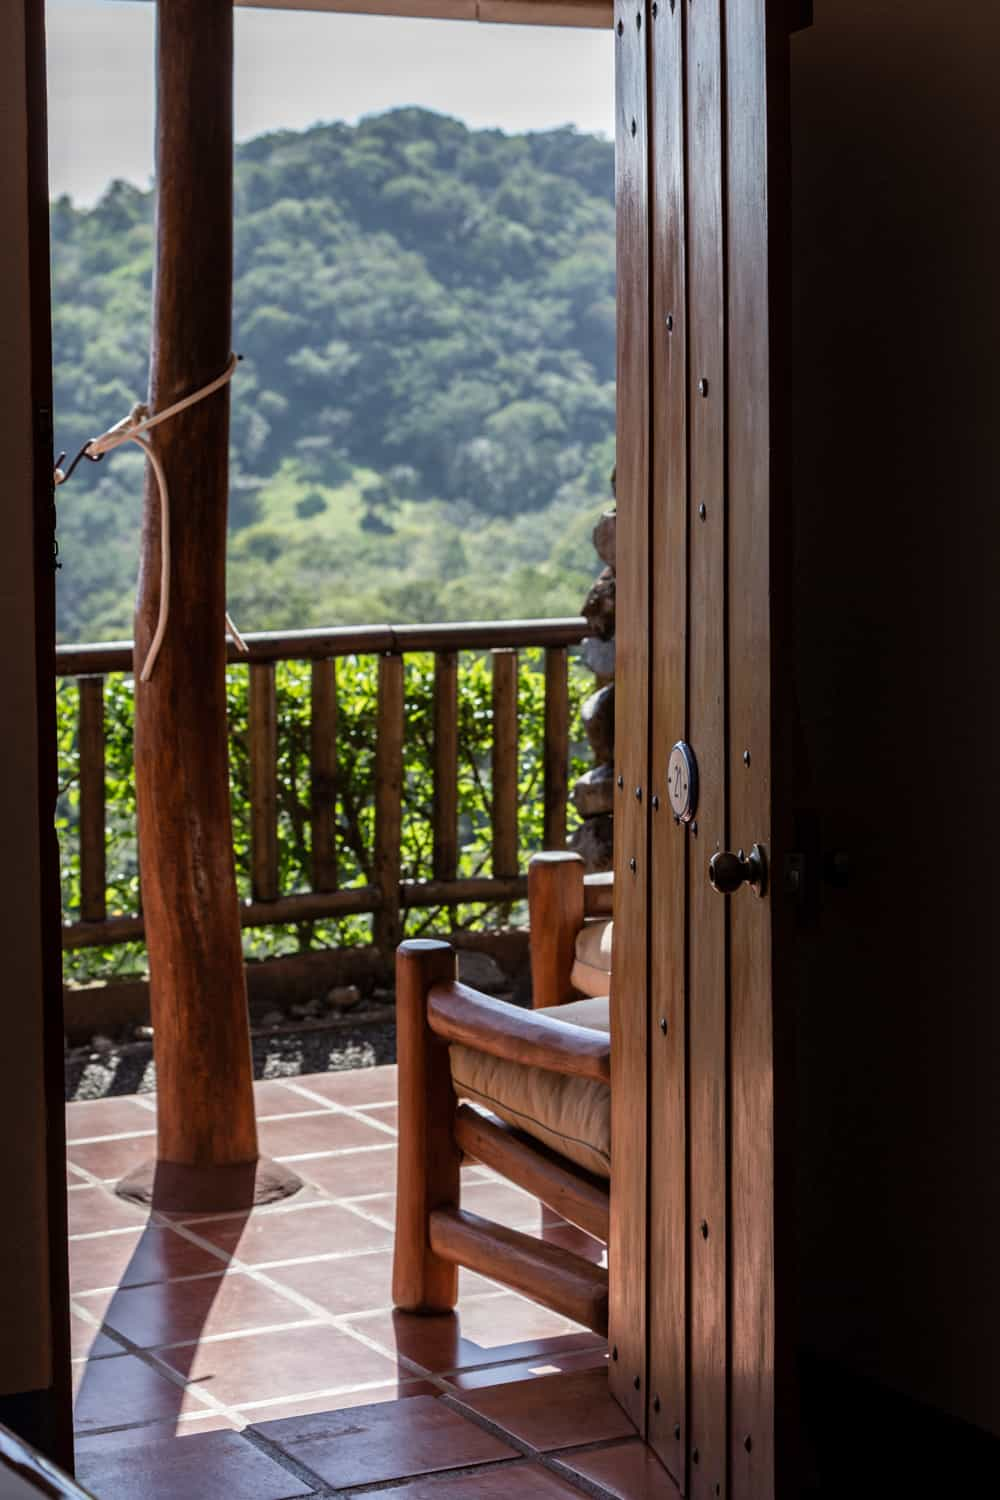 View of rainforest-covered mountain from deluxe room's entrance.